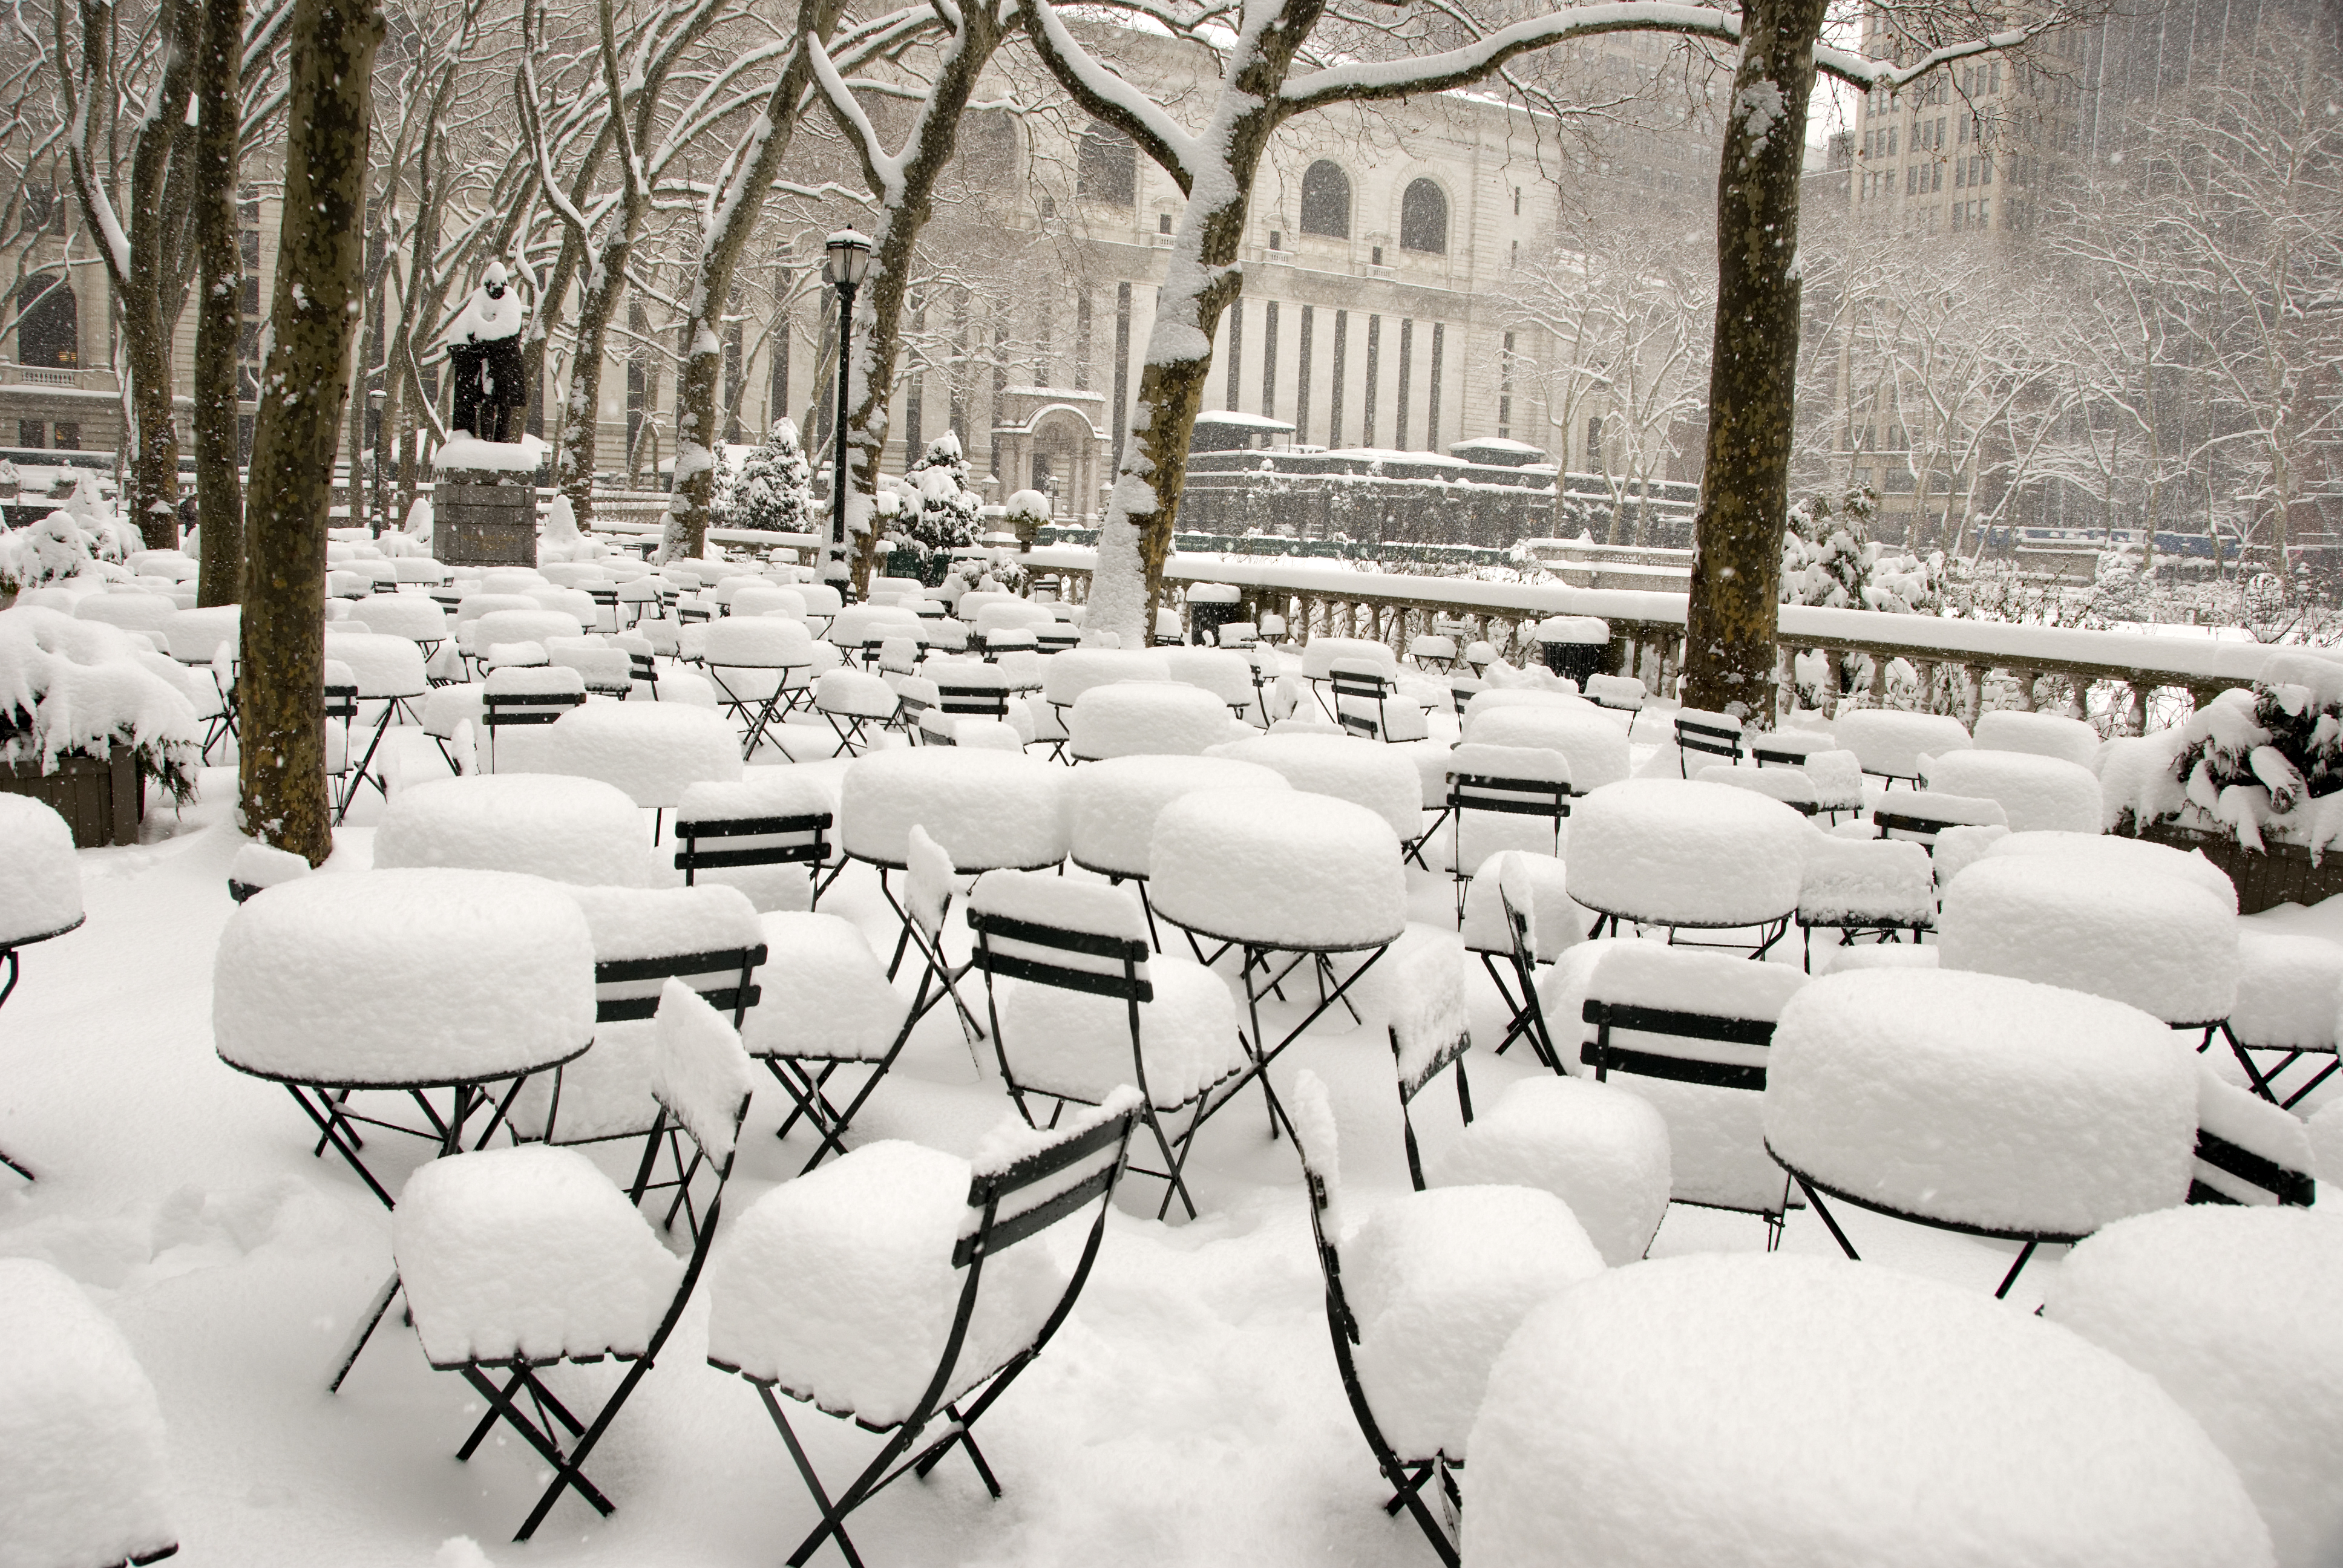 what have snow and learning a language have in common?